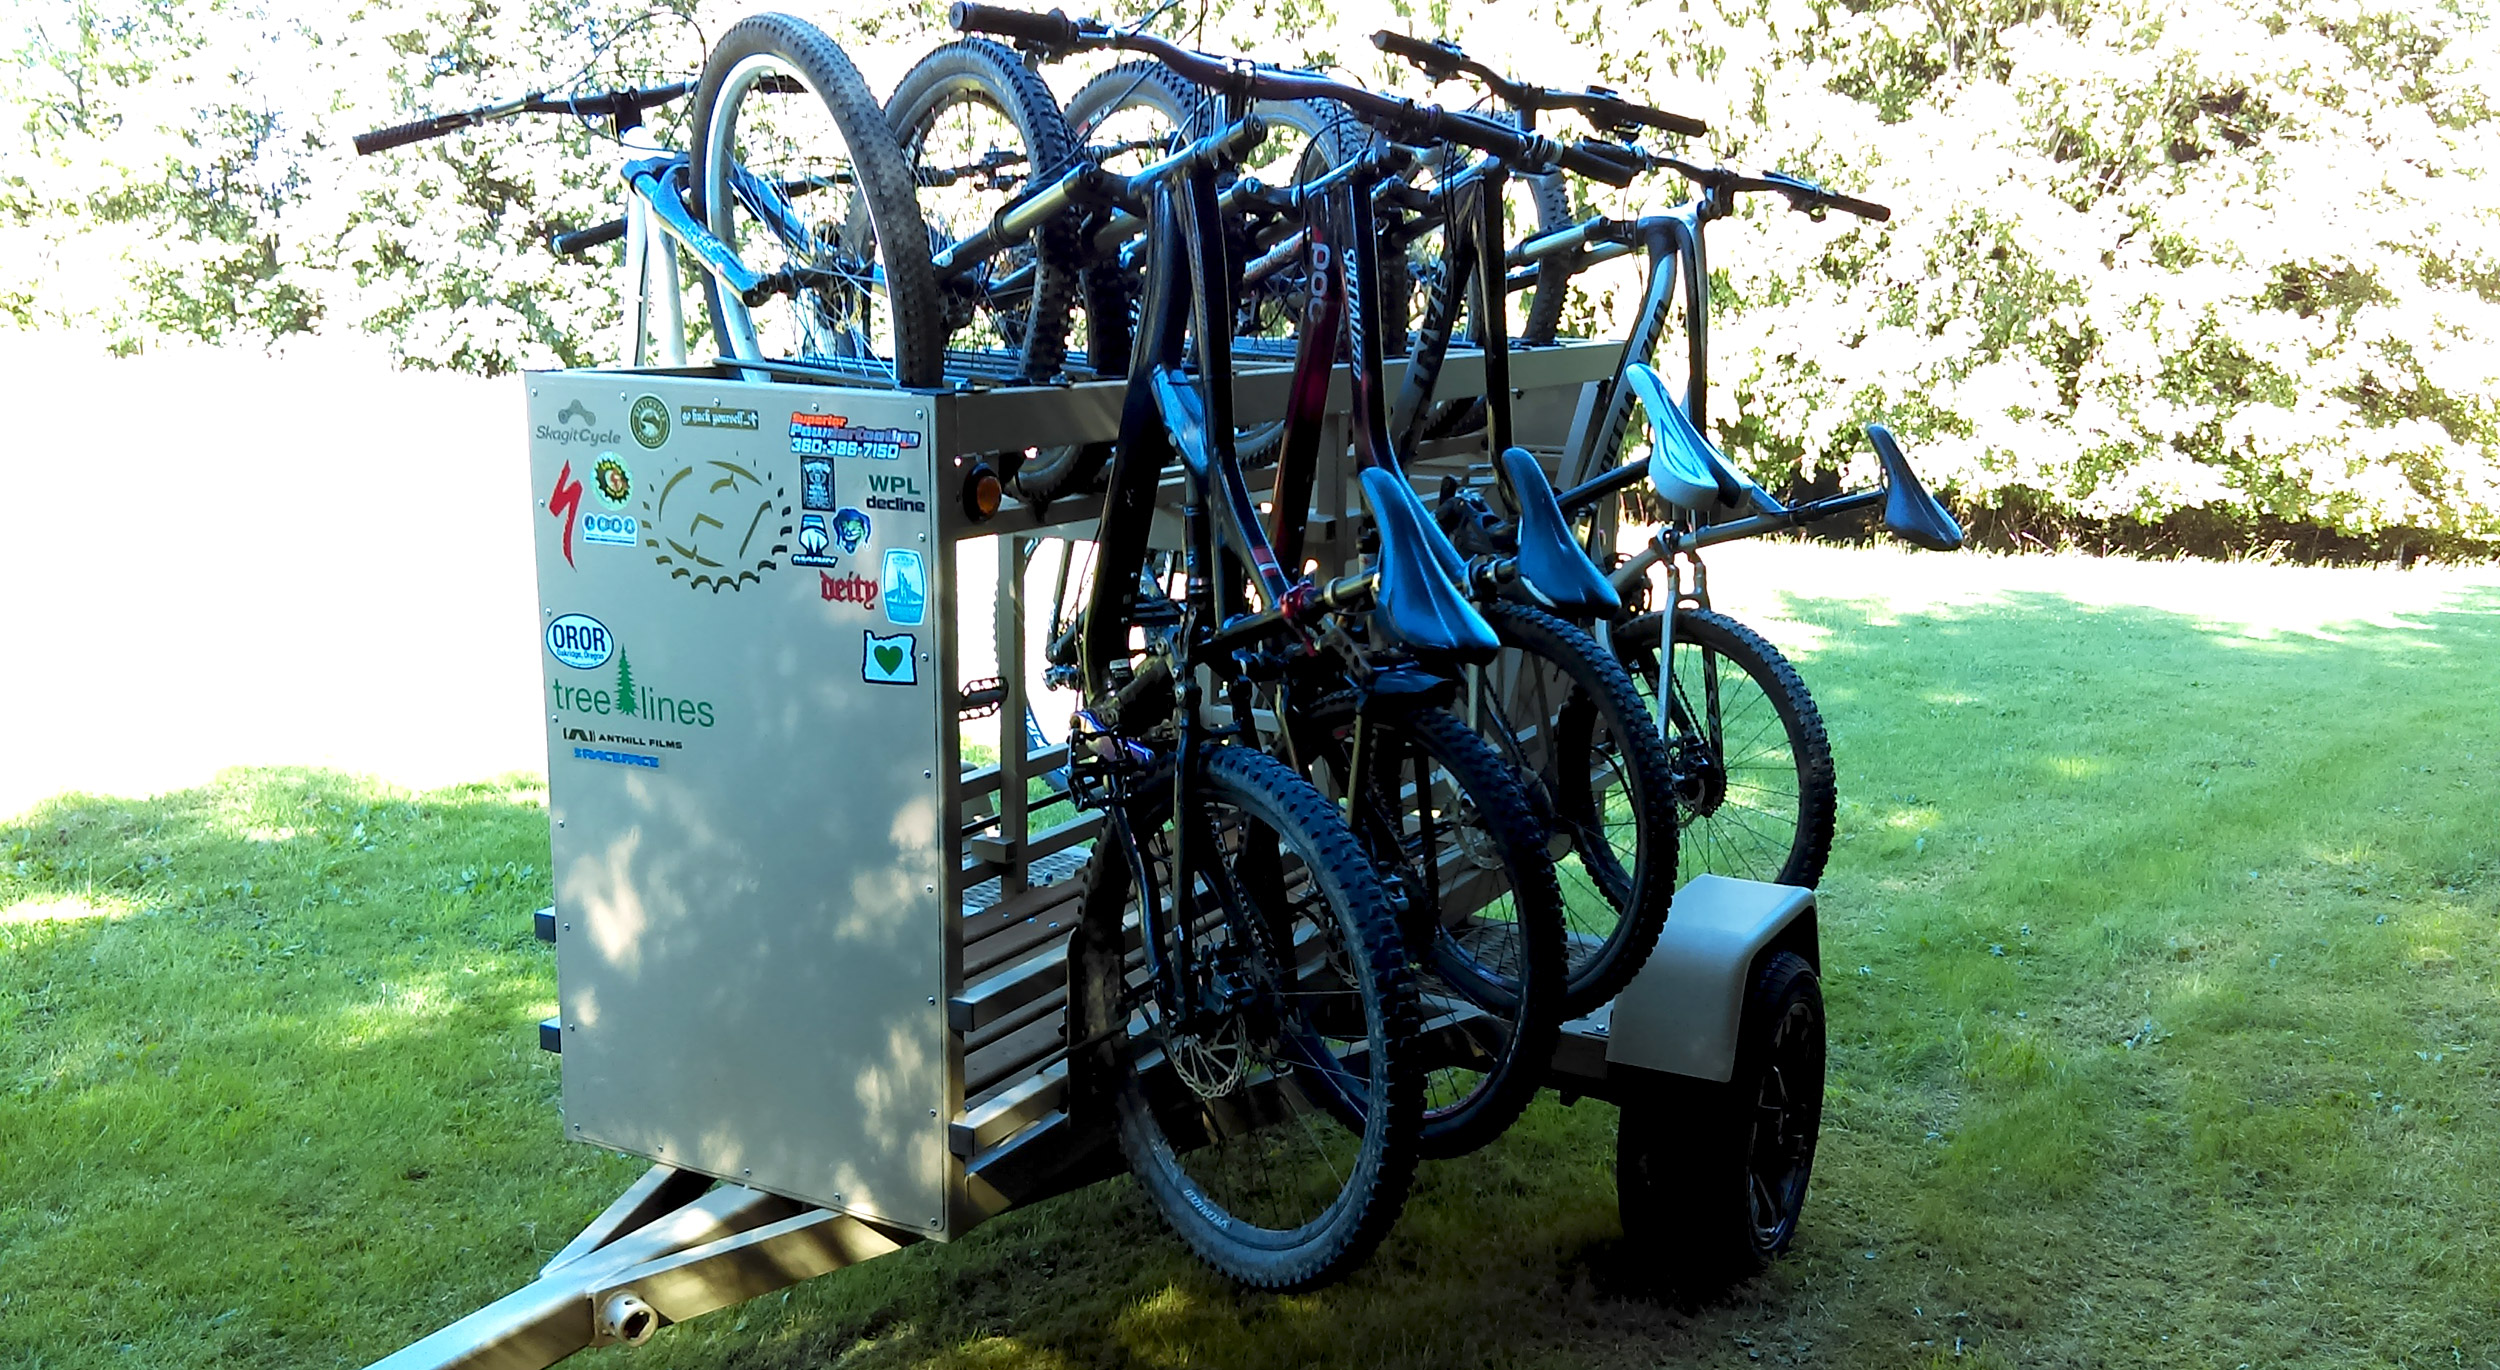 Small Huckwagons Mountain Bike Shuttle Trailers for many adventure activities